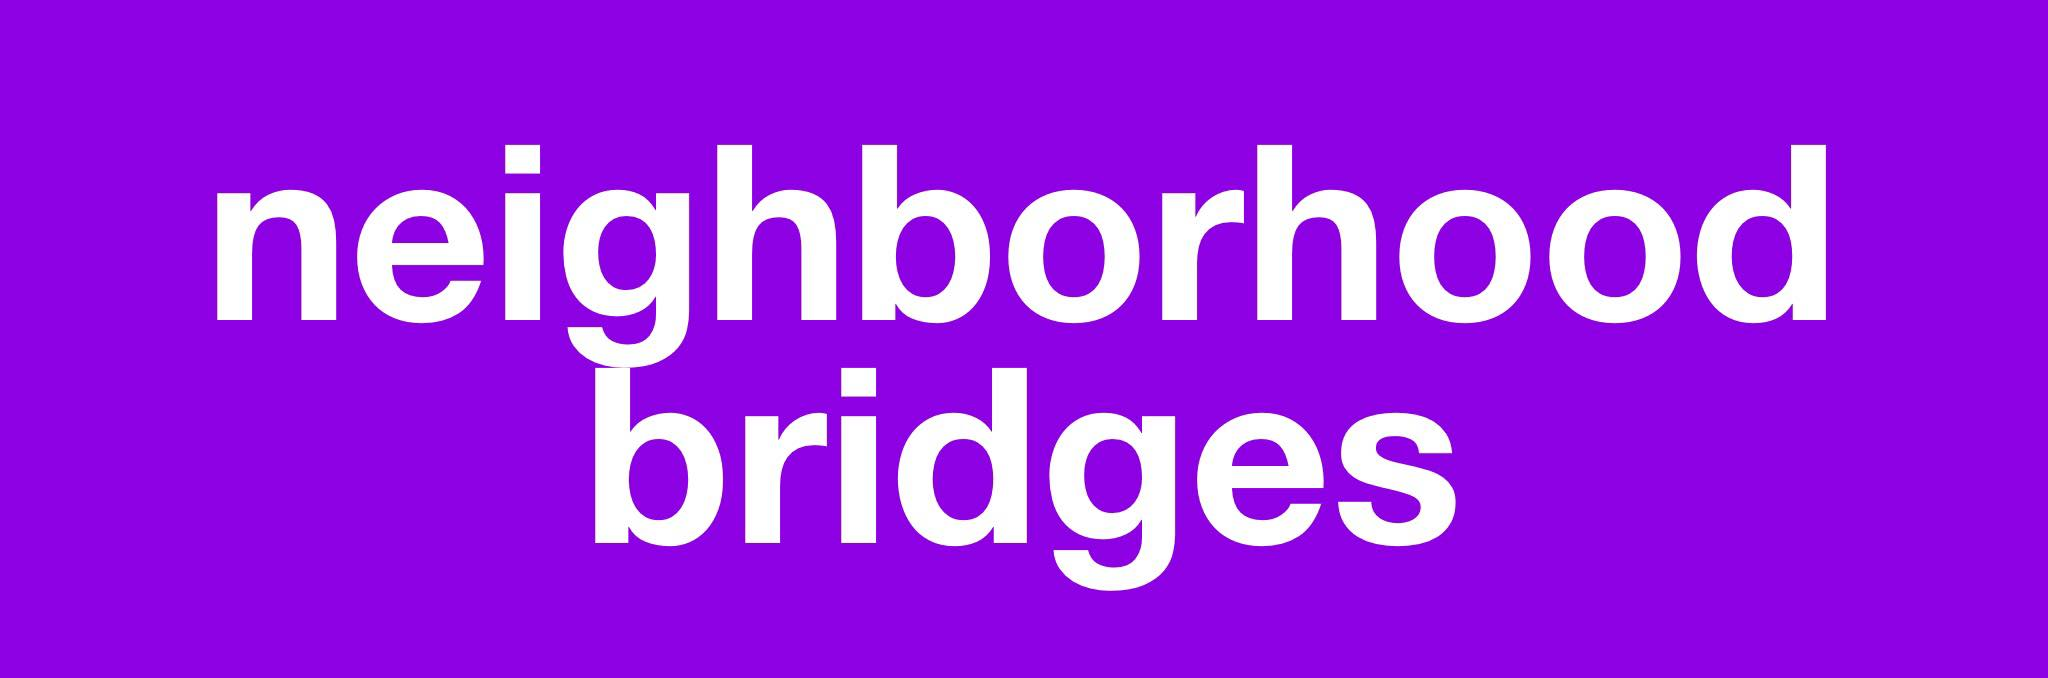 NEIGHBOORHOOD BRIDGES